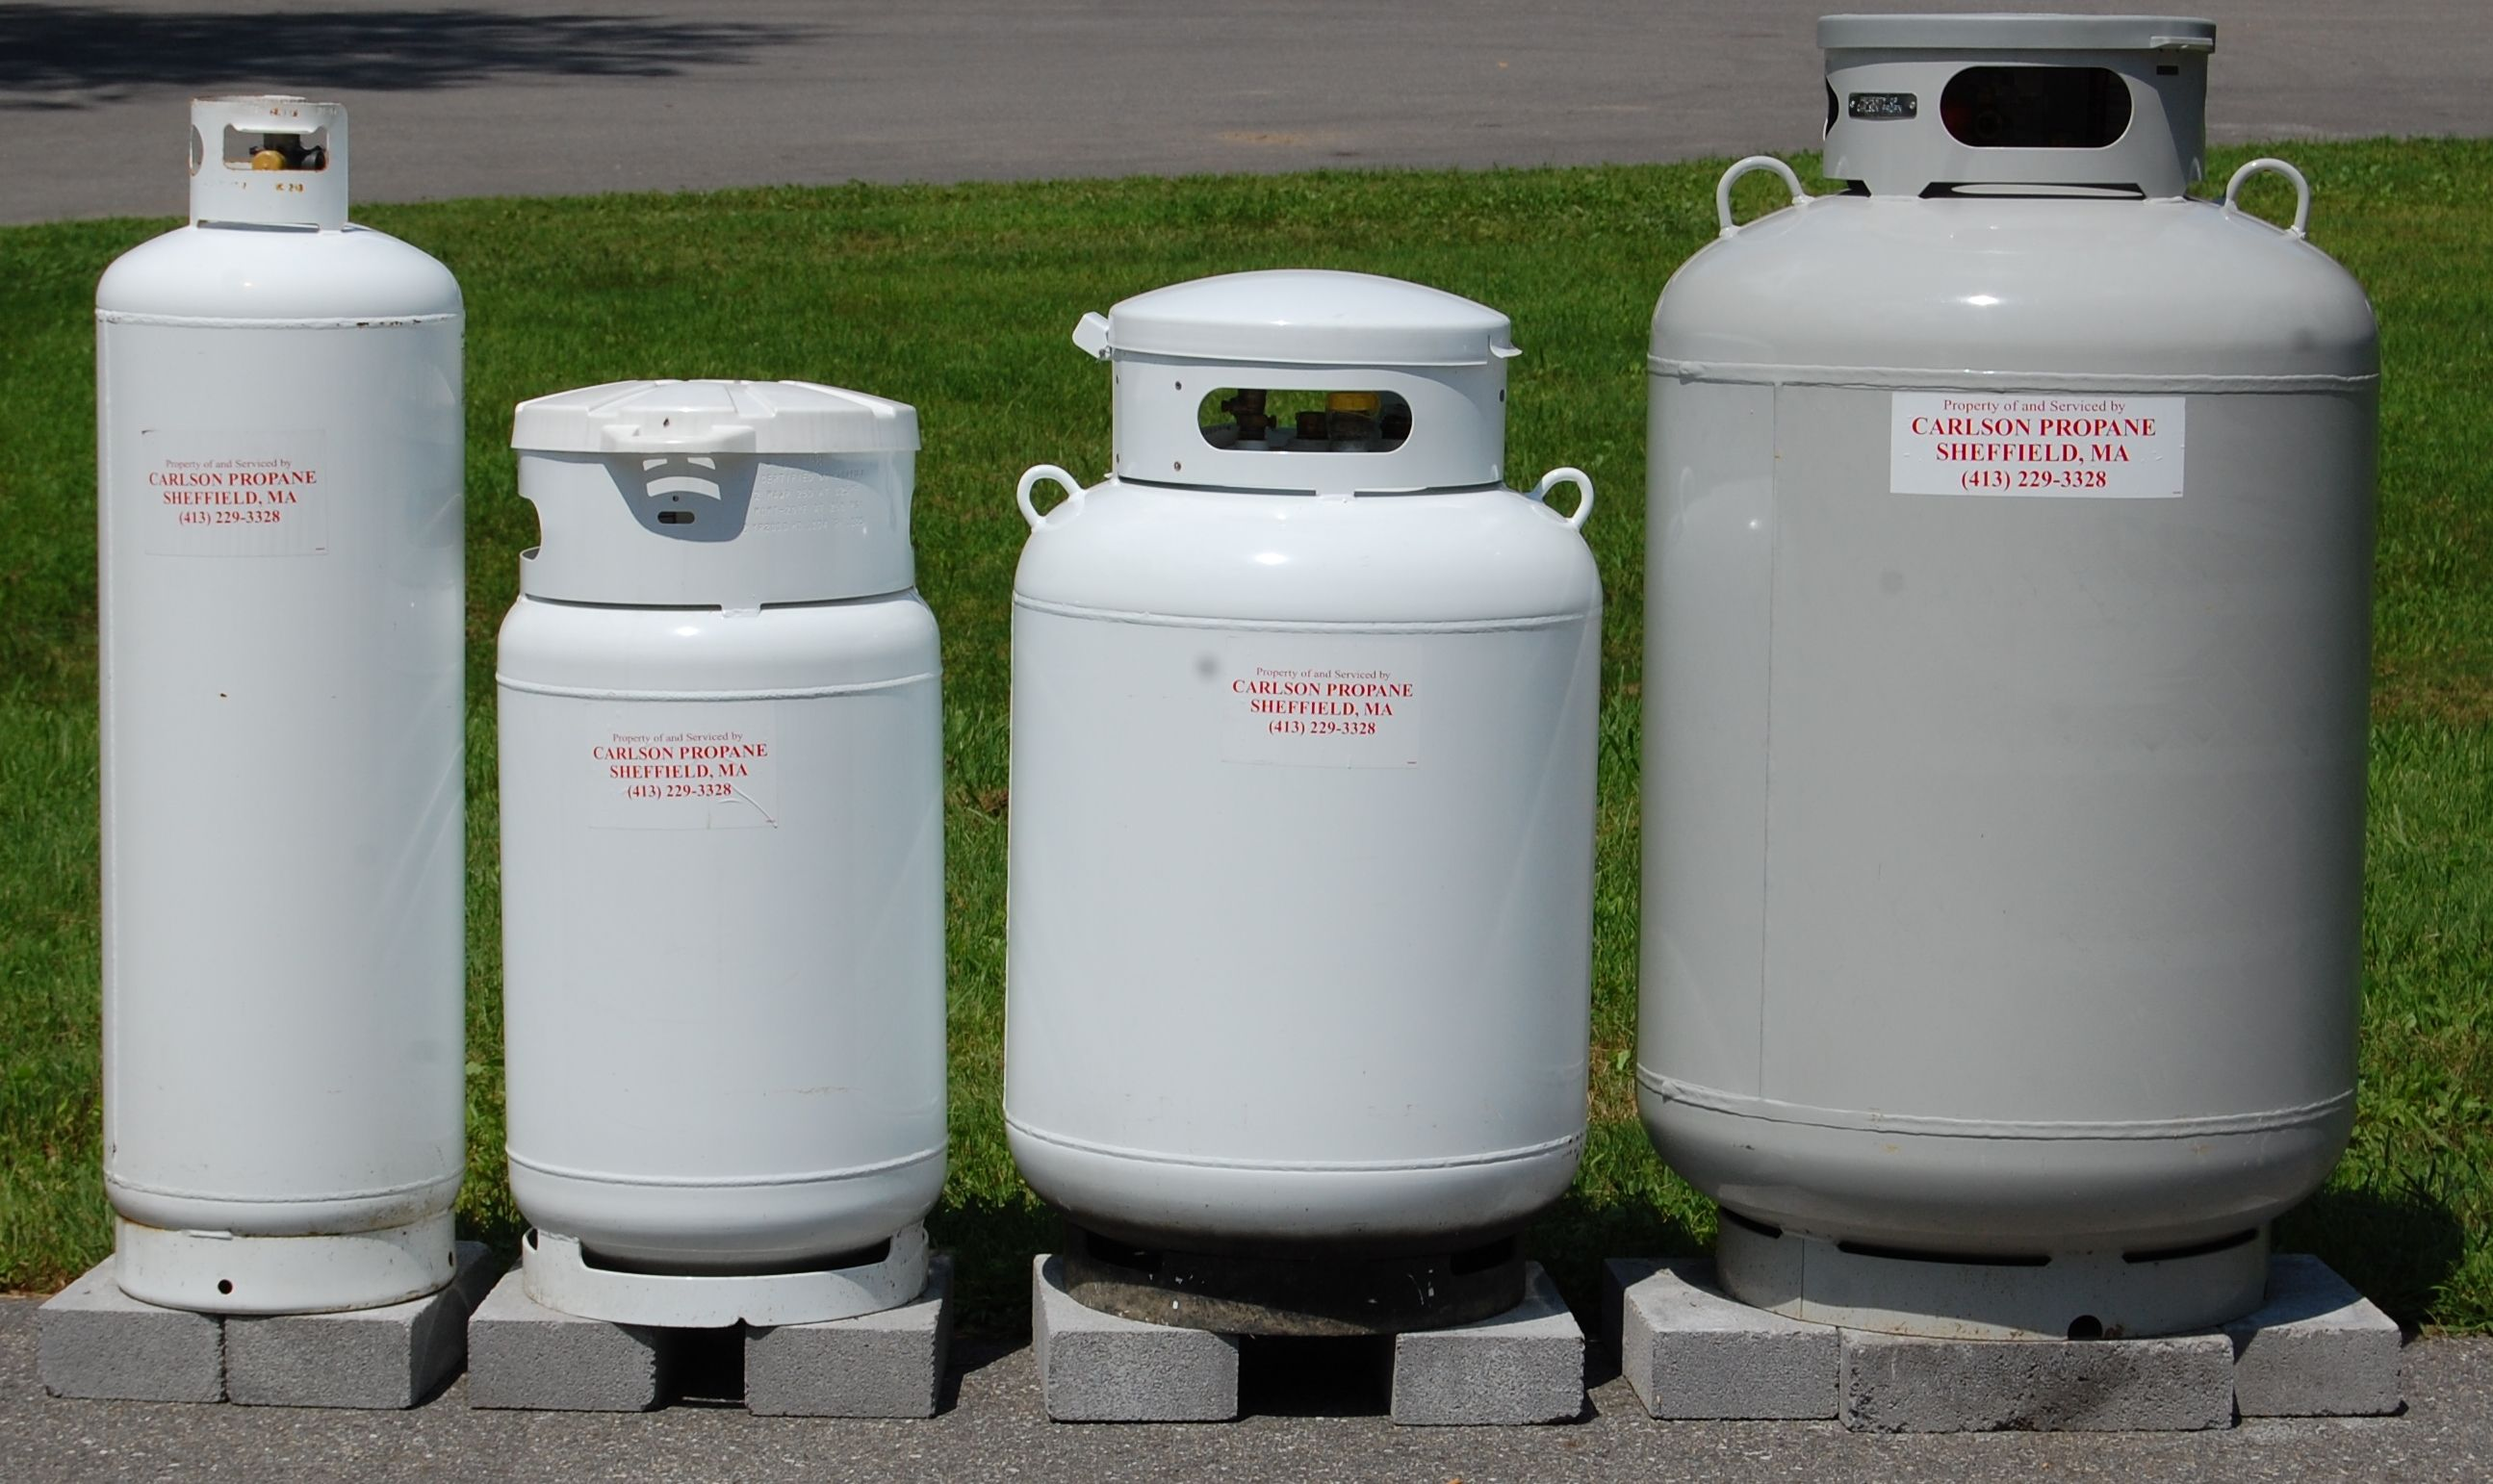 7d5cdd954a5bc3dbfbe0189f1ea02e68 - How Old Do You Have To Be To Get Propane